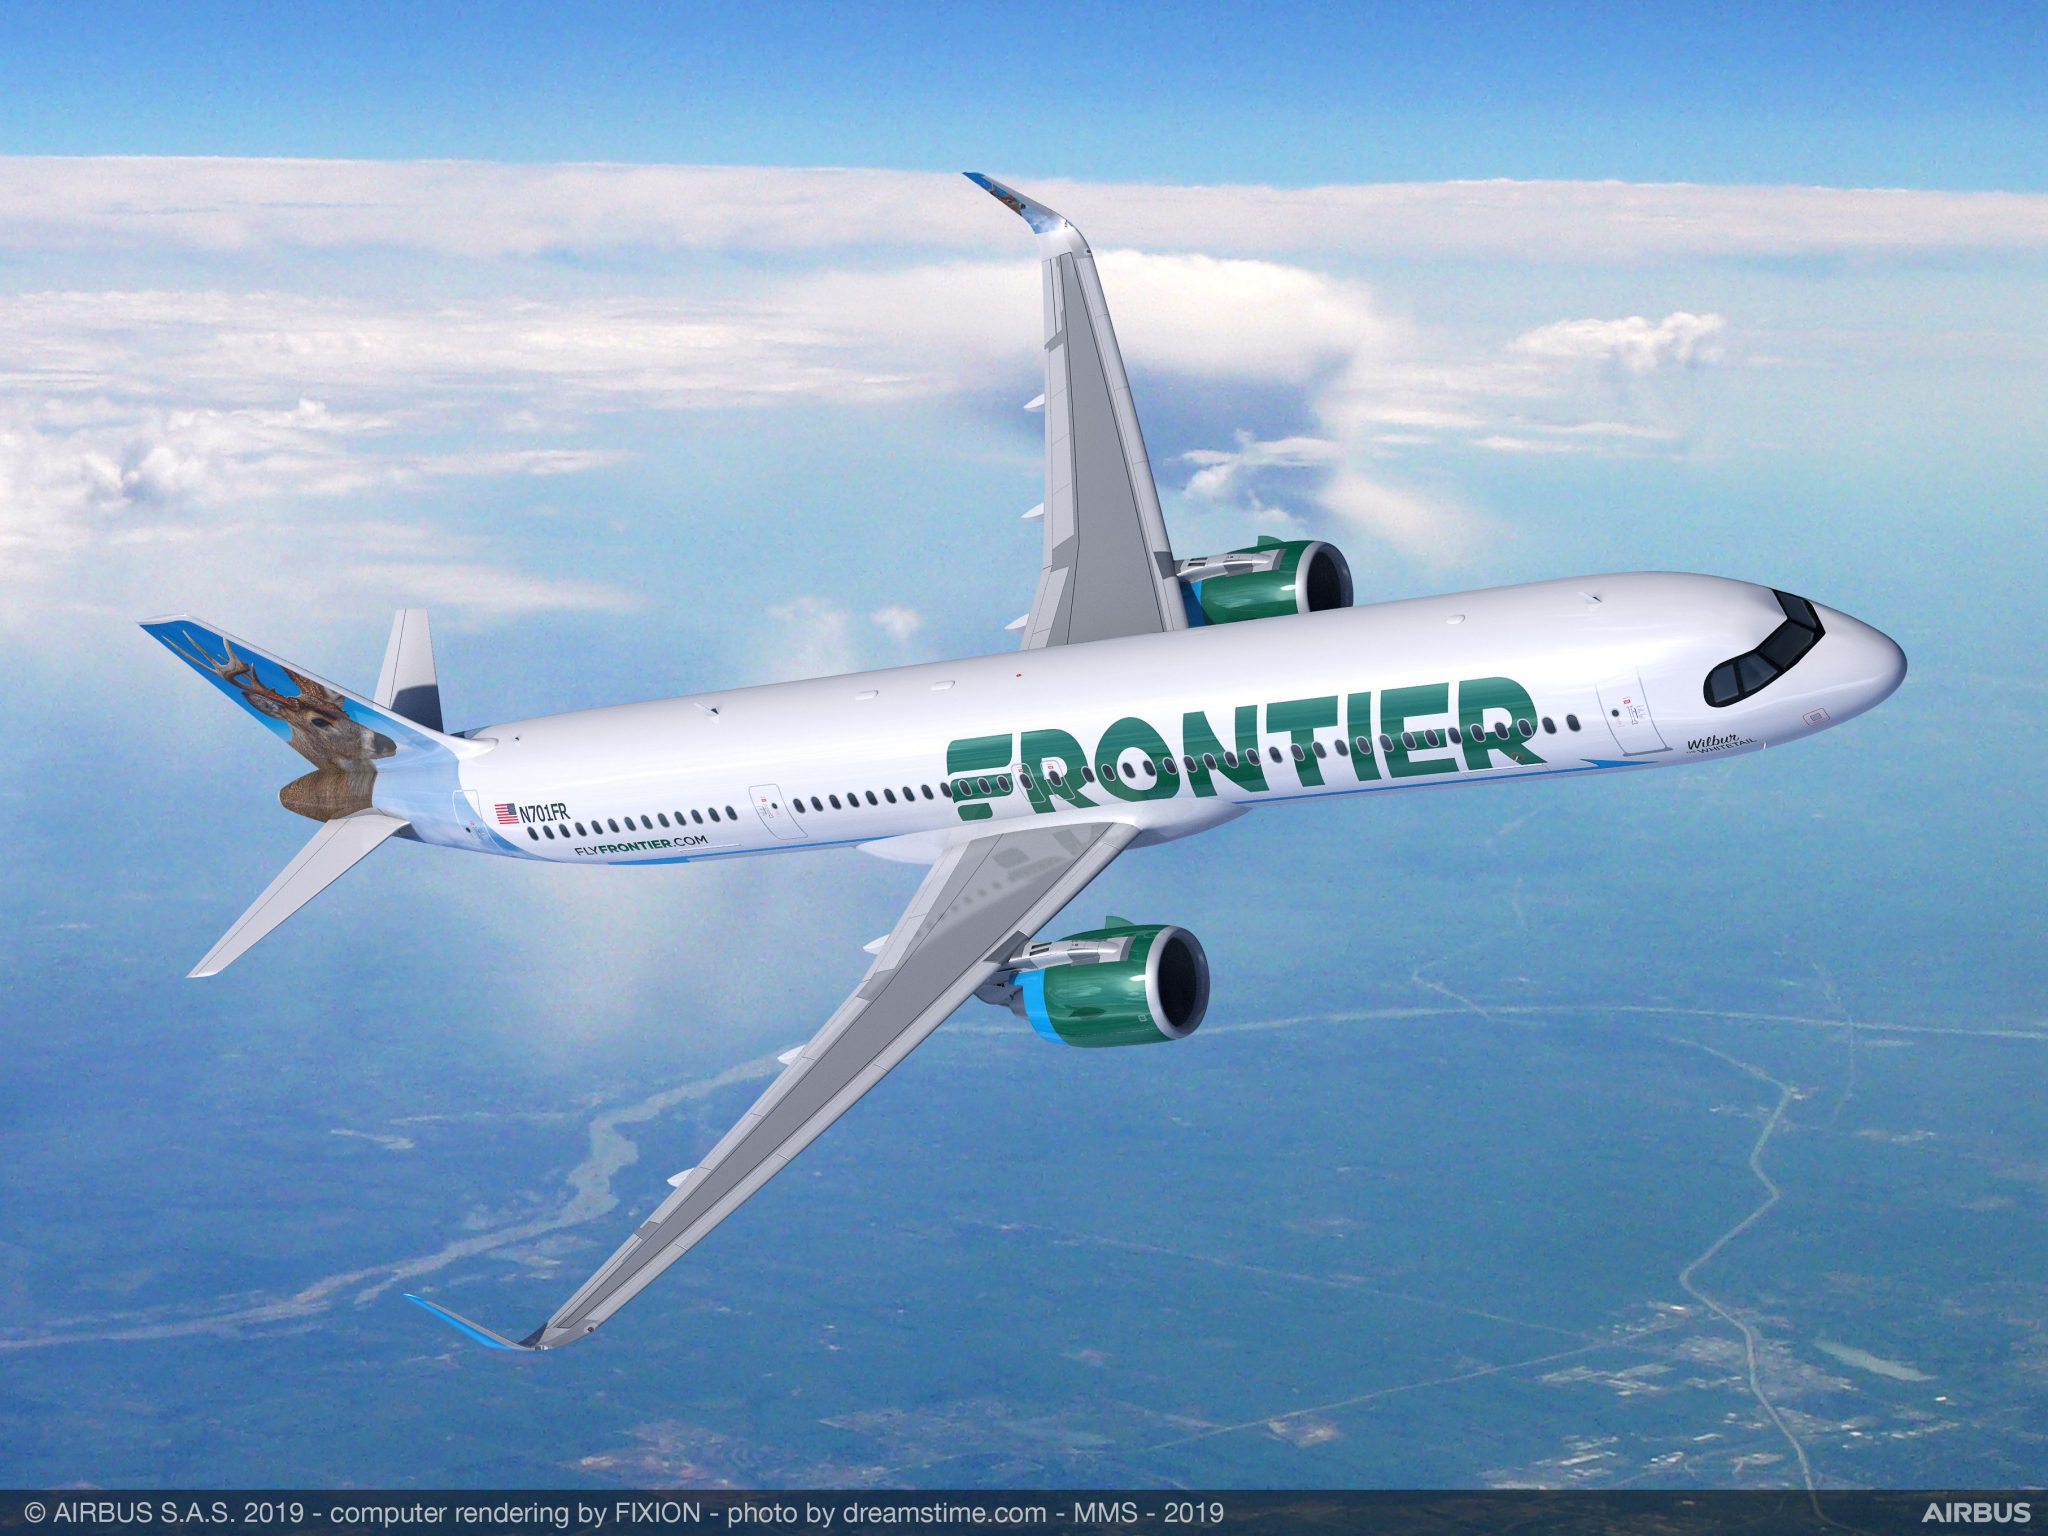 Frontier Airlines Launches 22 New Routes Ahead of the Holidays